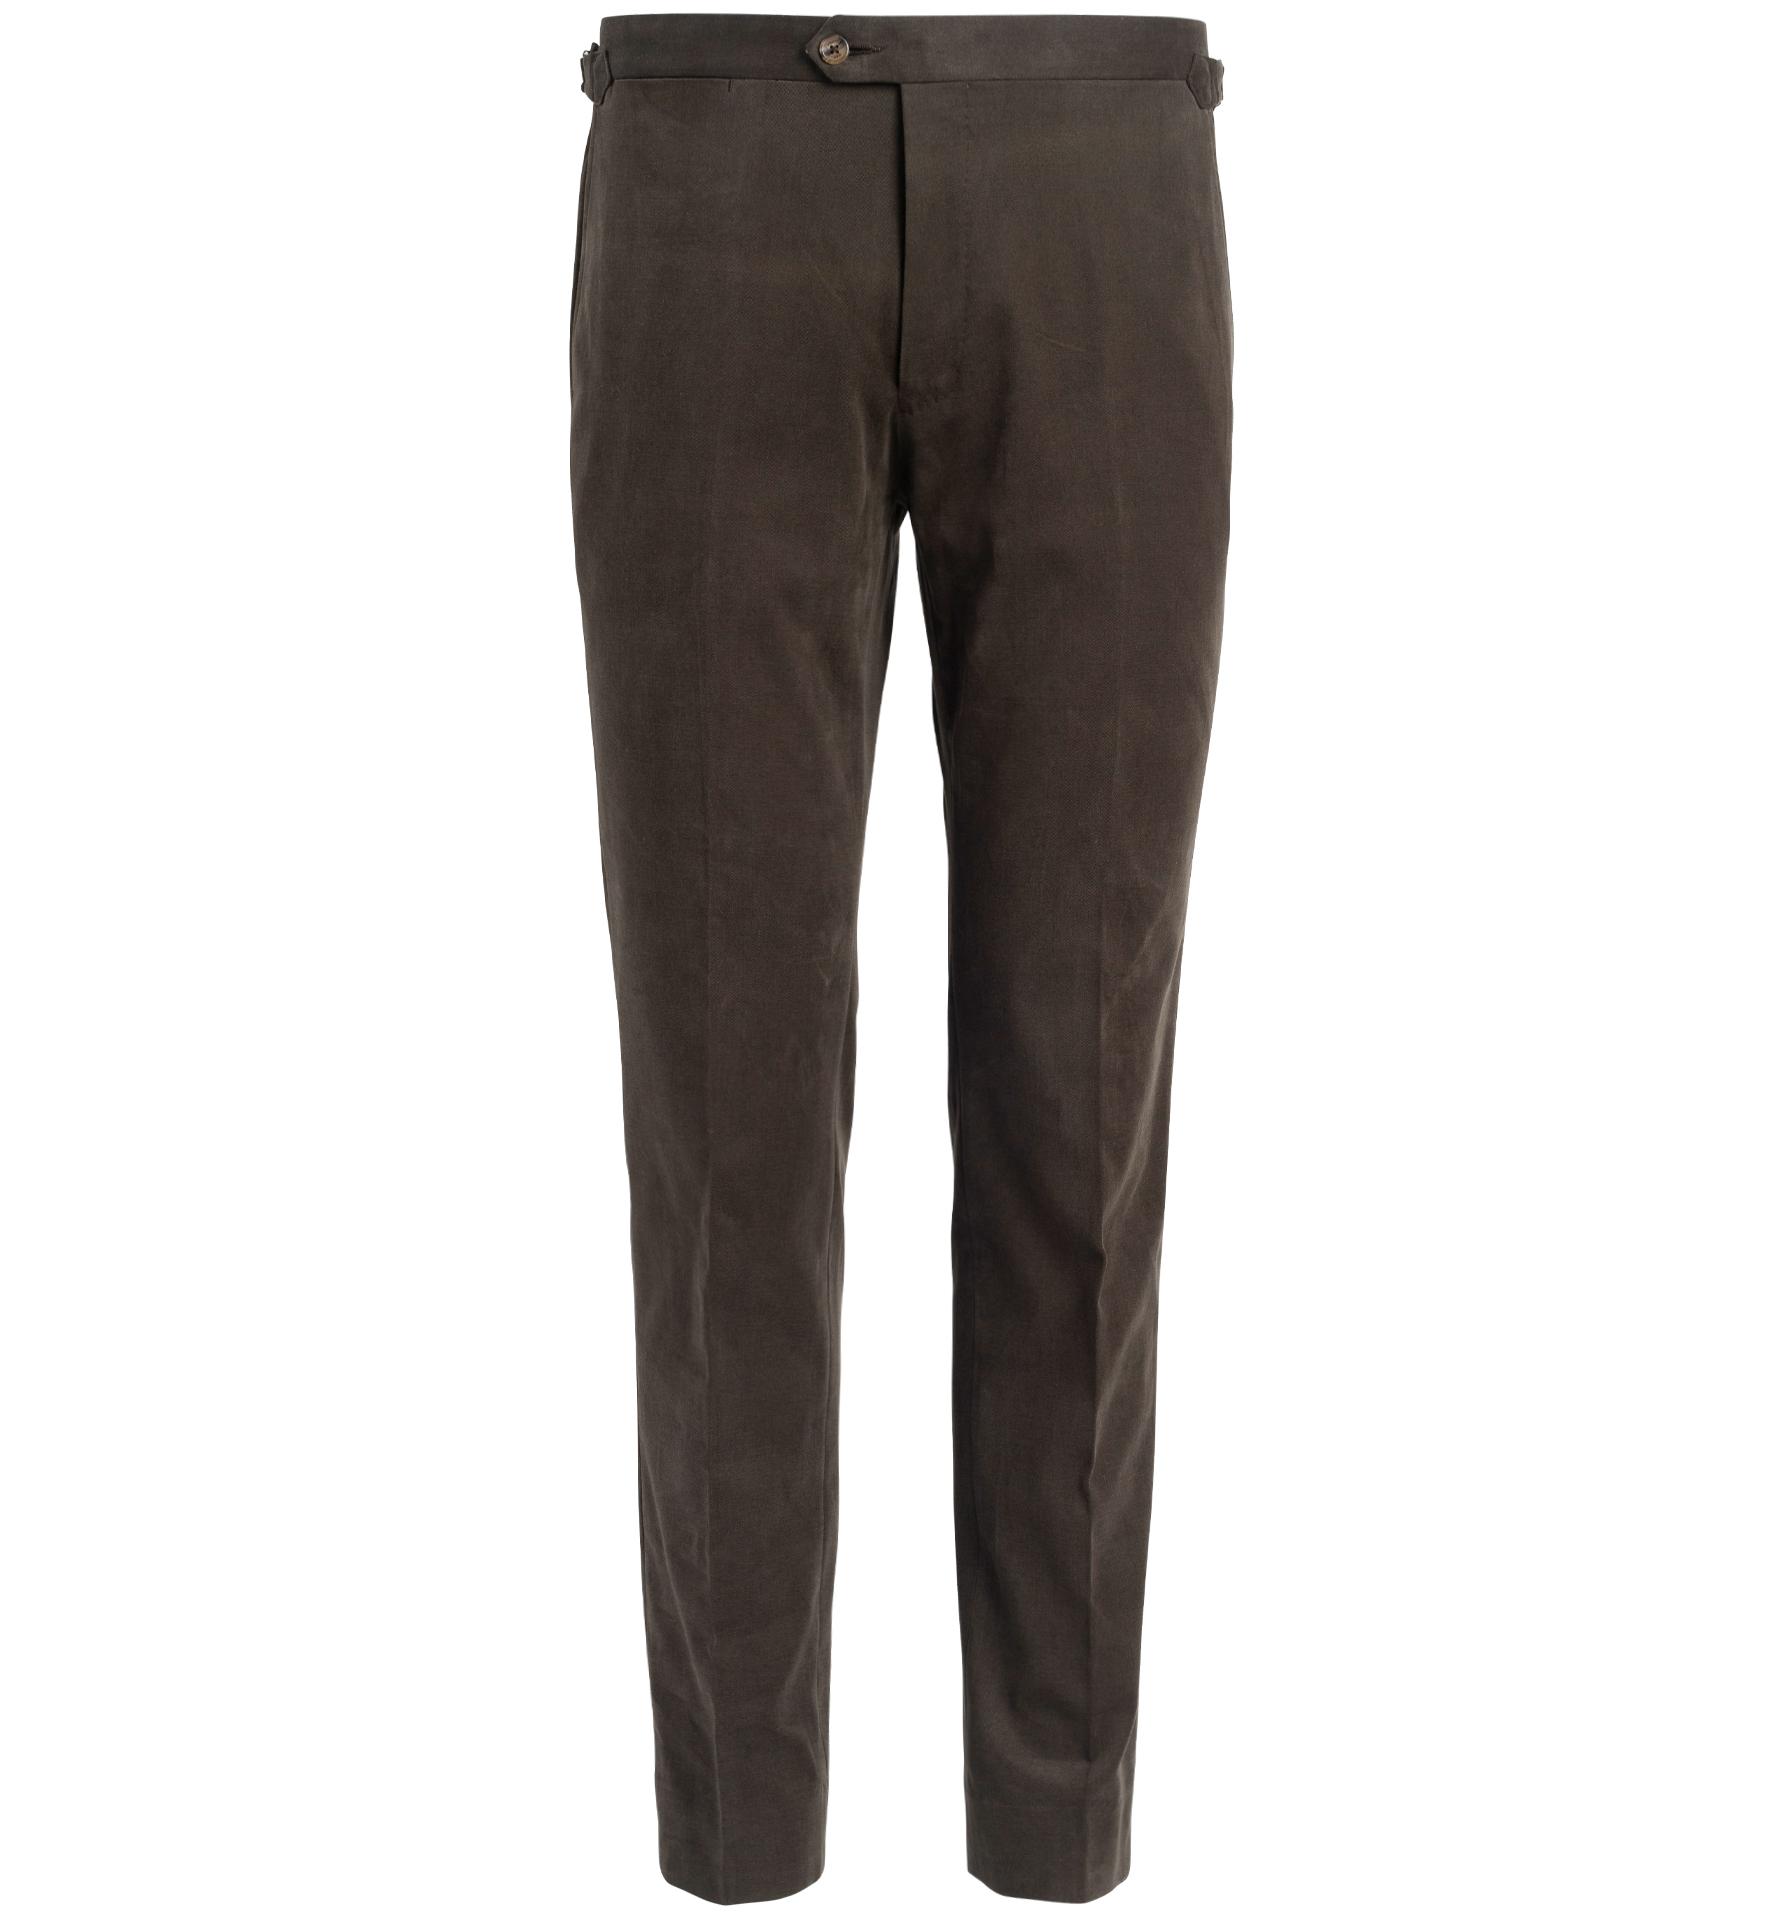 Zoom Image of Allen Olive Shaved Cotton Trouser